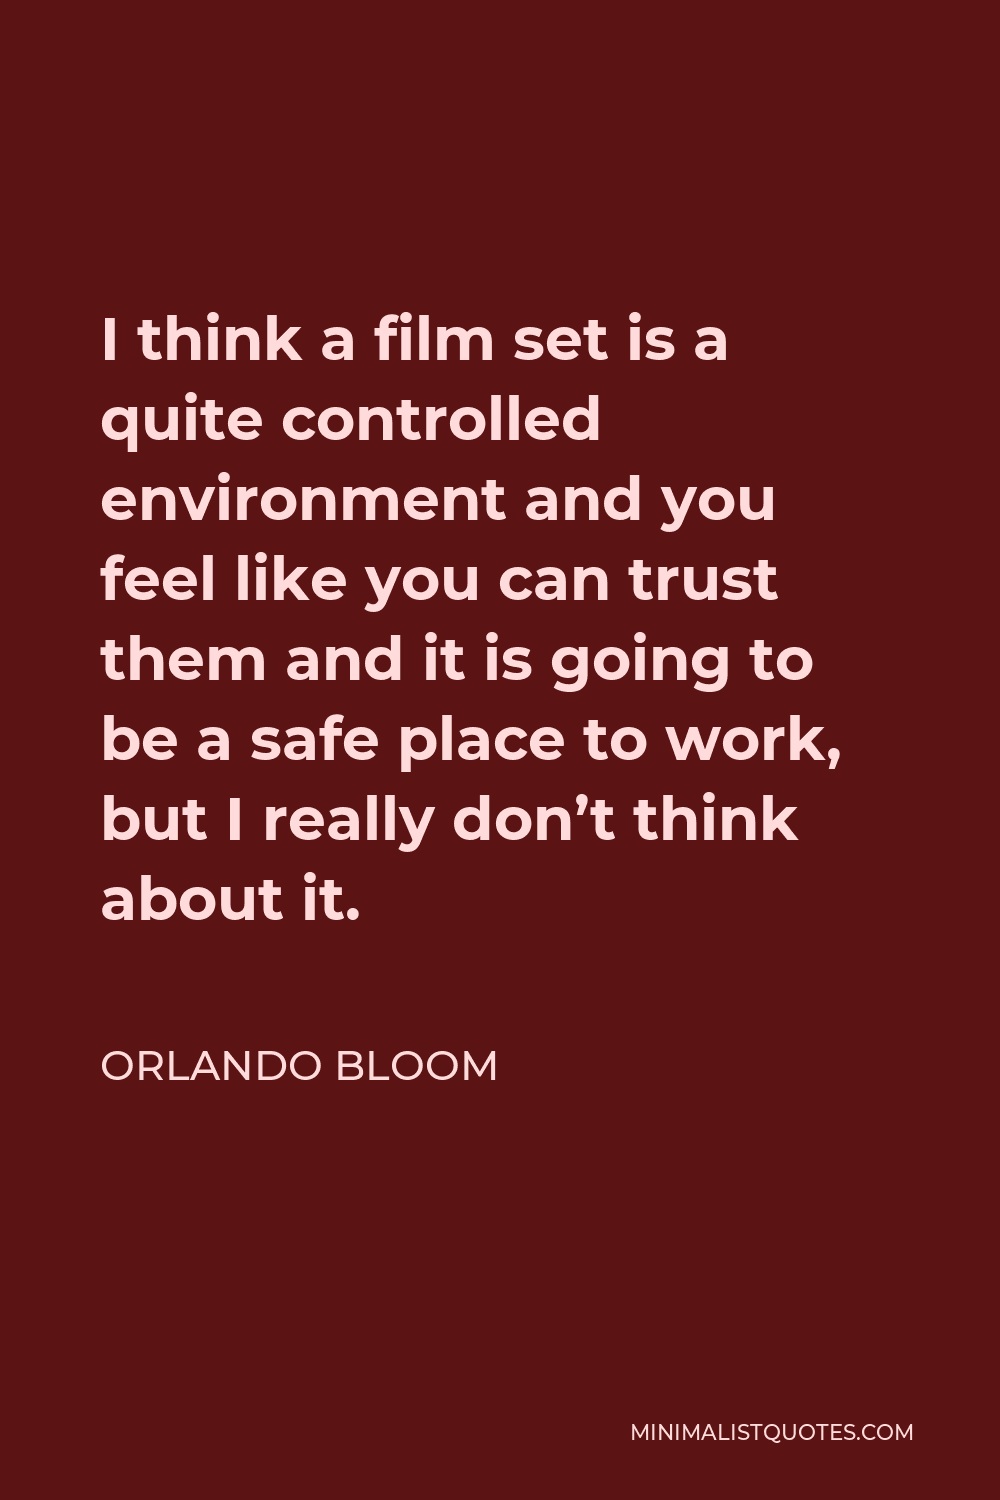 Orlando Bloom Quote - I think a film set is a quite controlled environment and you feel like you can trust them and it is going to be a safe place to work, but I really don't think about it.